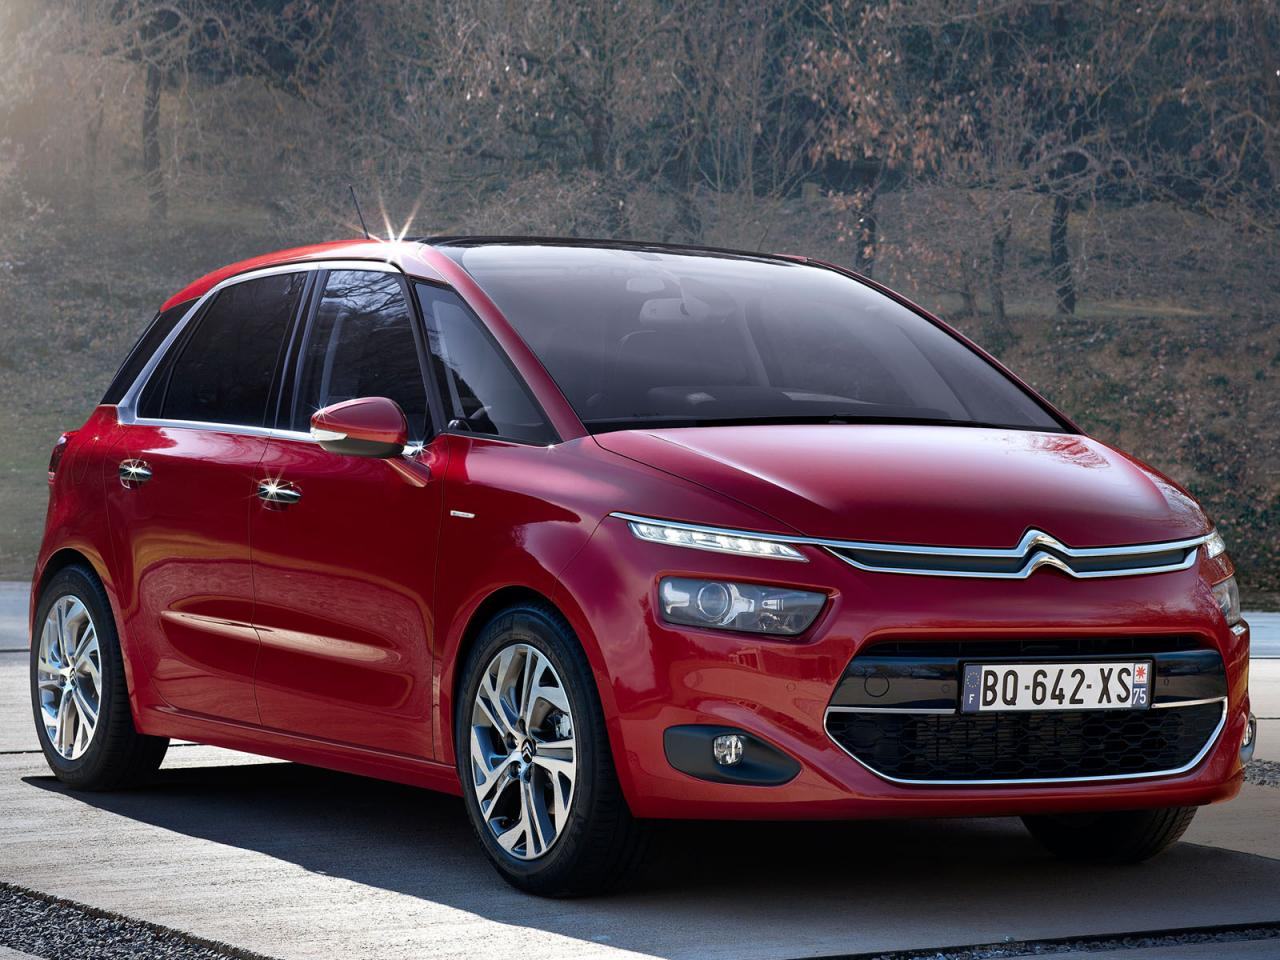 Citroen C4 2013 2013 Citroen C4 Picasso First Official Photos Leaked